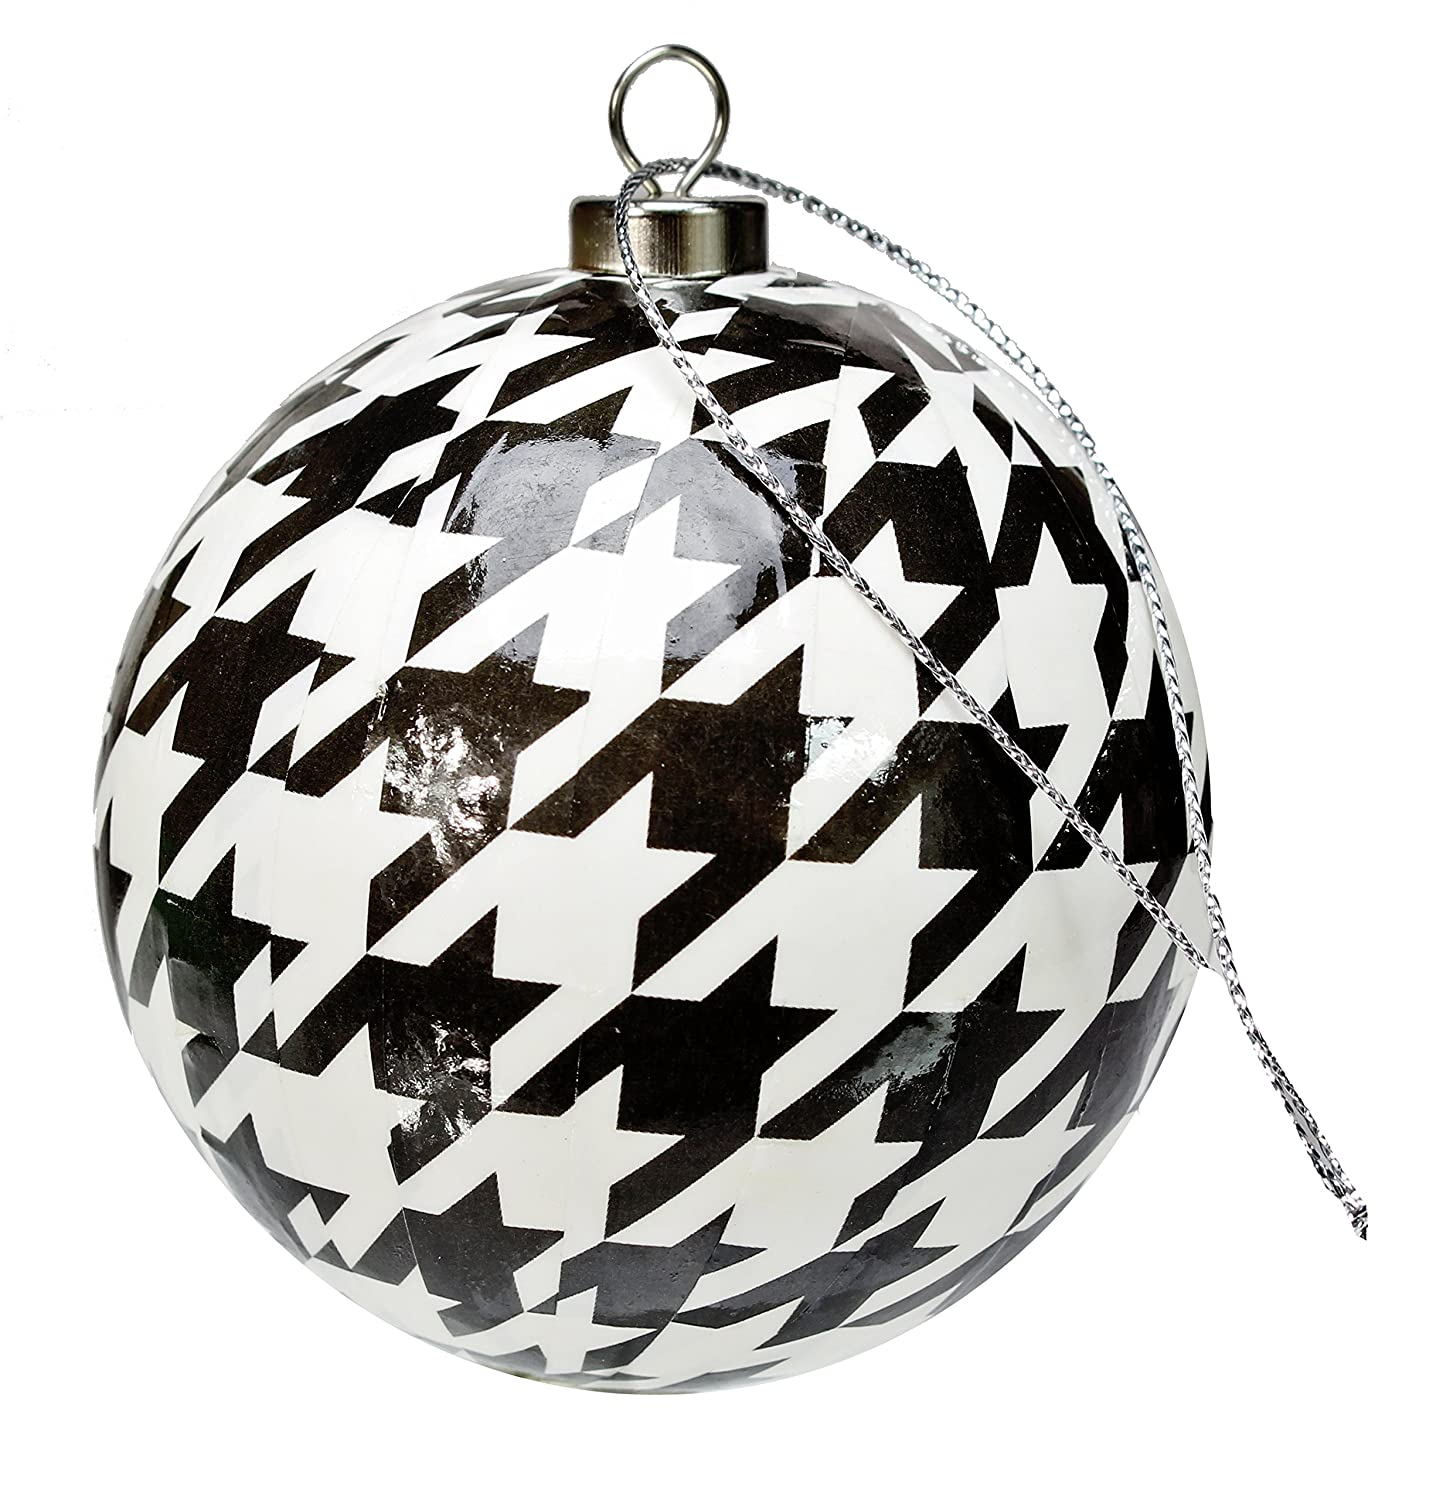 Black Christmas Ornaments.Houndstooth Christmas Ornaments Black And White Check 4 Pack Alabama Houndstooth Collection By Havercamp